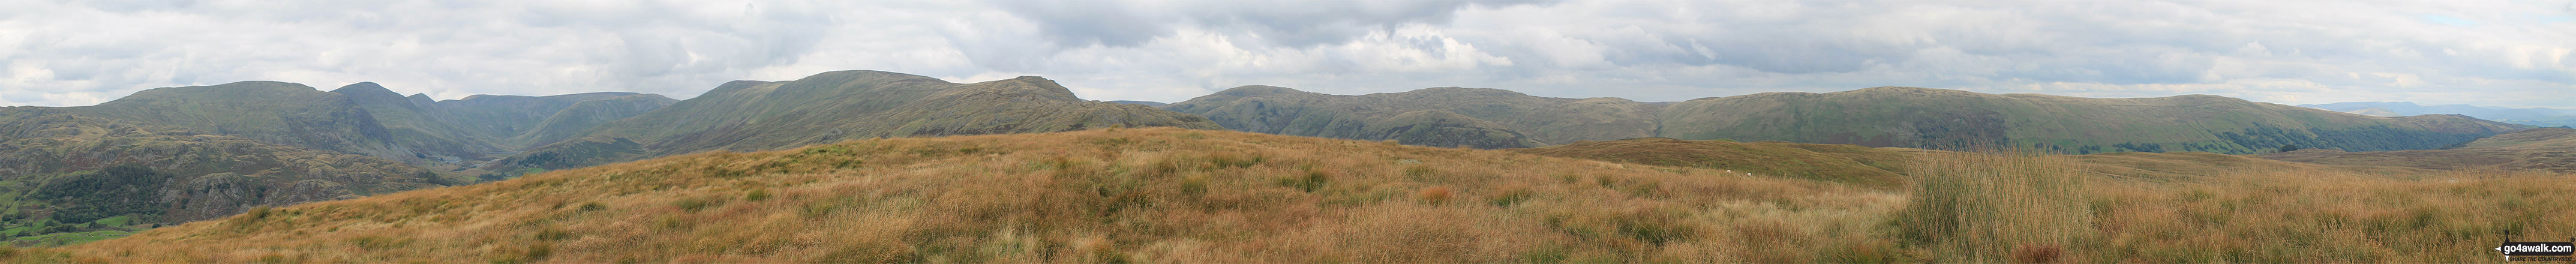 The Lake District horizon from Hollow Moor (Green Quarter Fell)